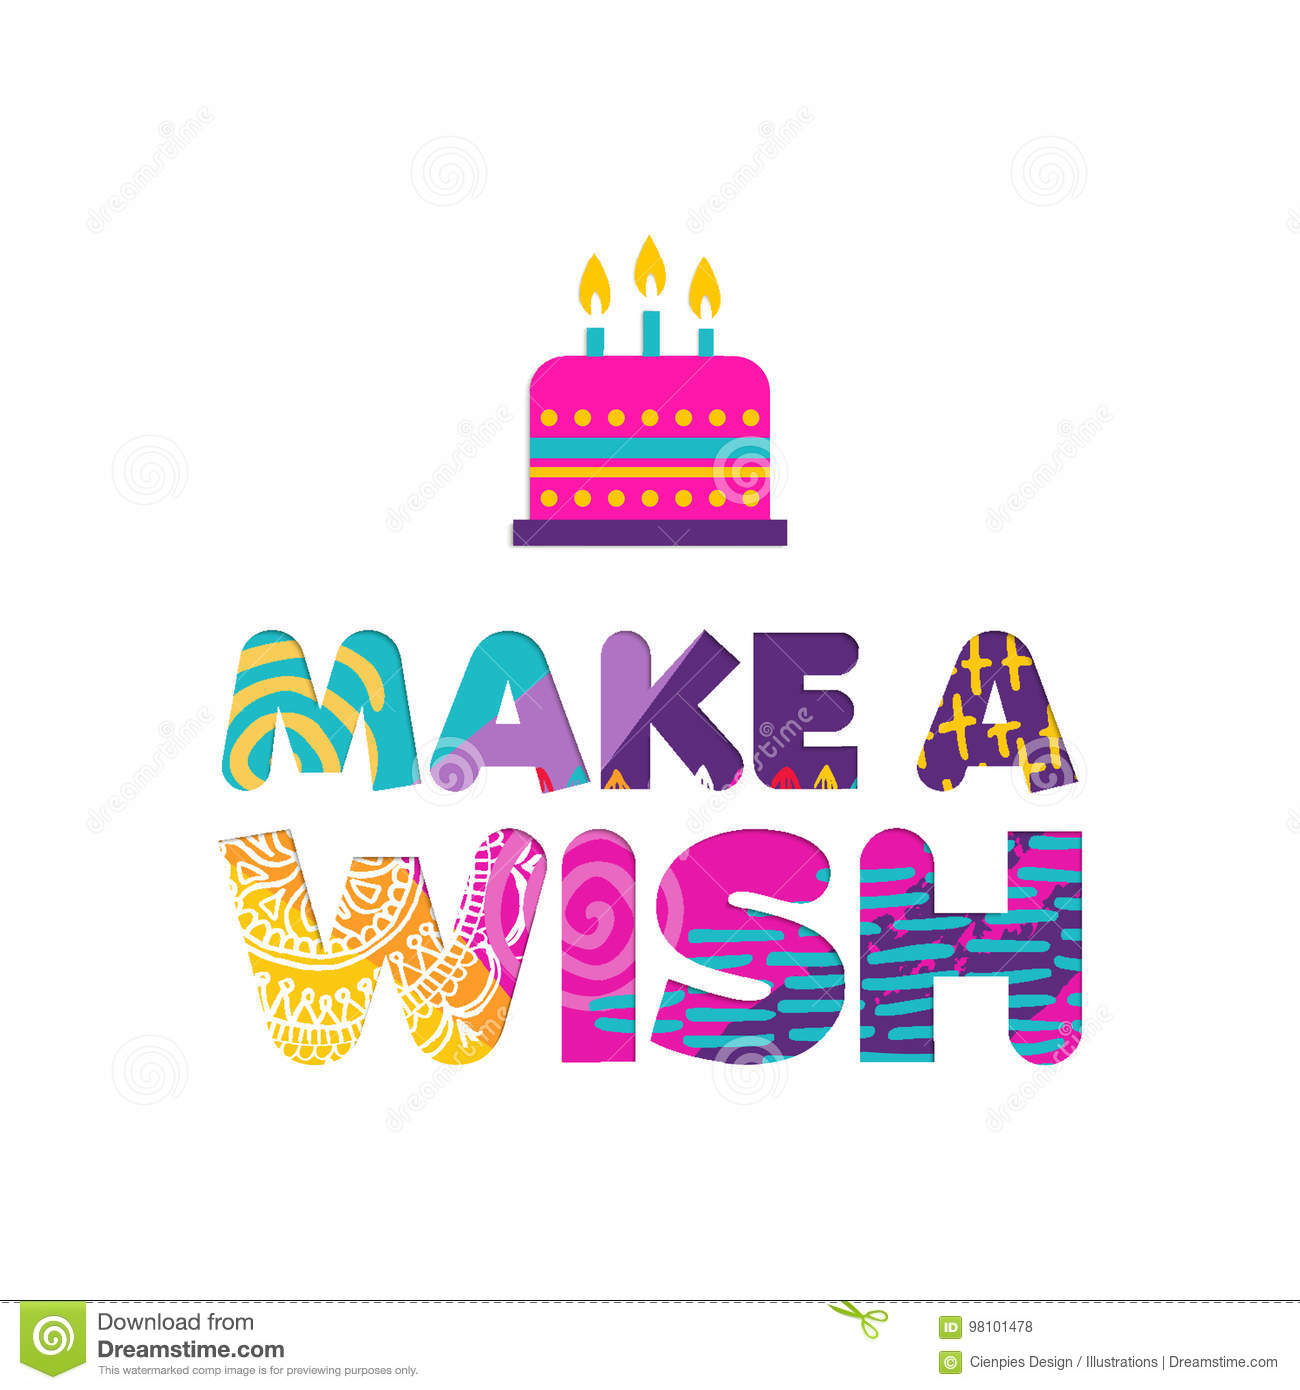 Happy Birthday Make A Wish Paper Cut Quote Design With Colorful Abstract Hand Drawn Art Ideal For Special Event Poster Card Or Party Invite